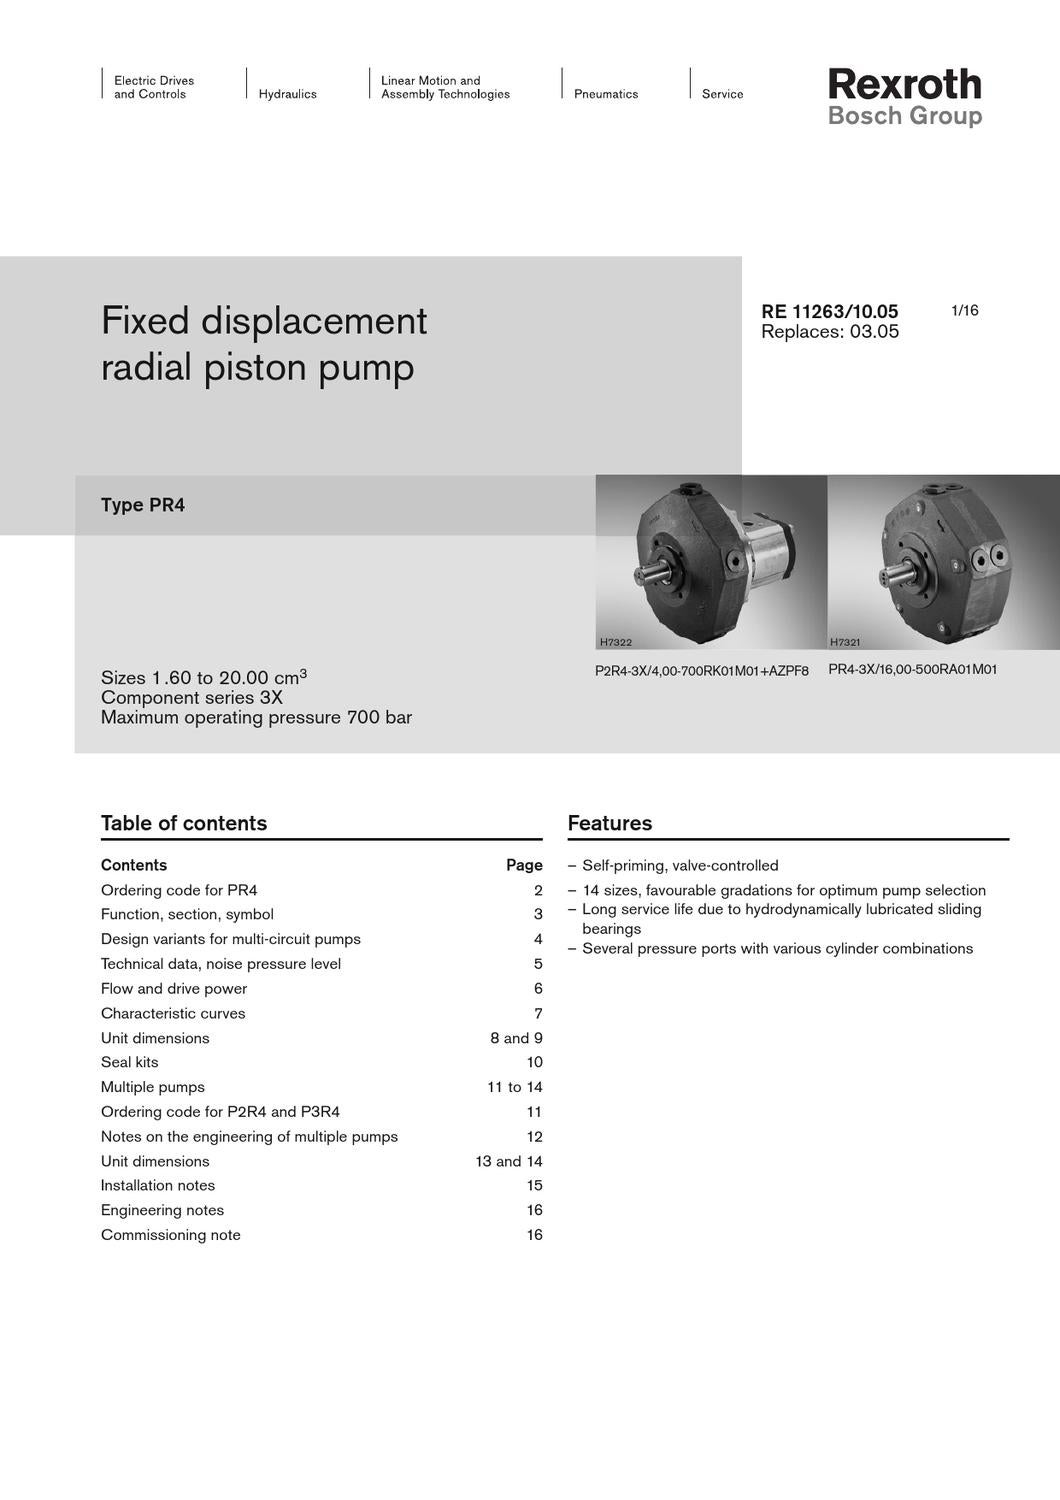 Specifications rexroth radial pistonpump pr4 3x by mh hydraulics issuu biocorpaavc Images